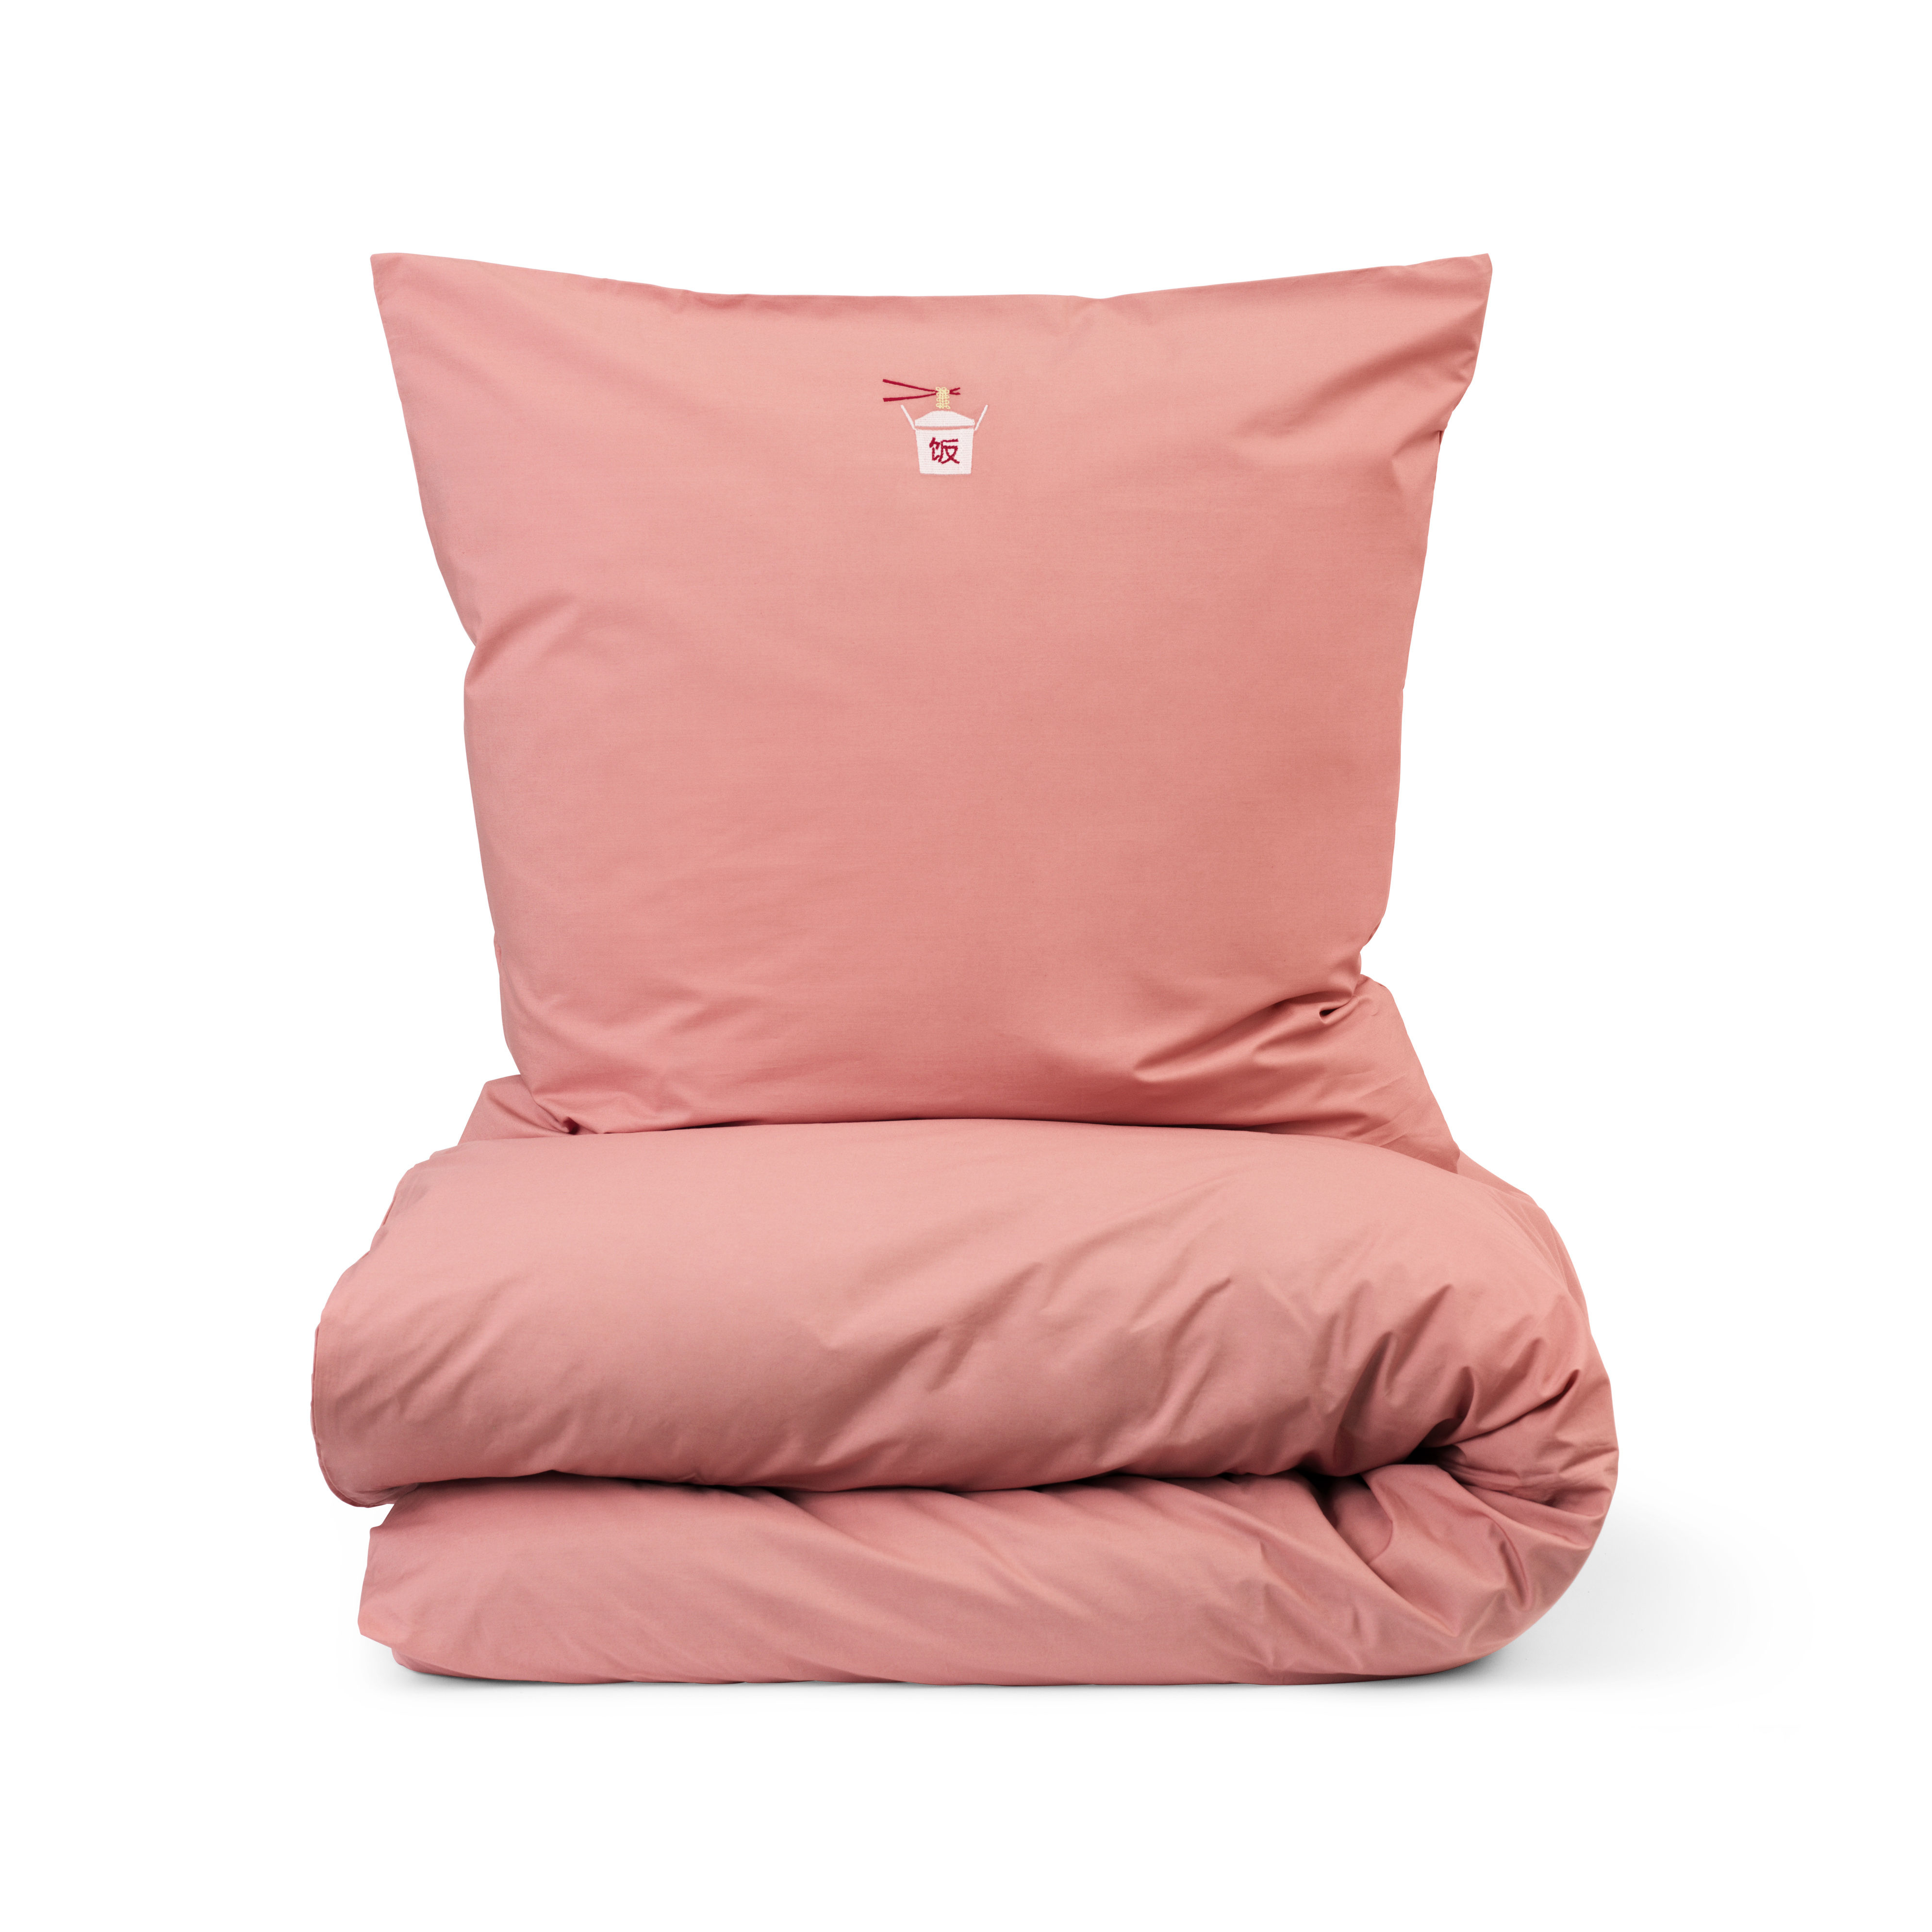 Decoration - Bedding & Bath Towels - Snooze Bedlinen set for 2 persons - / 200 x 220 cm by Normann Copenhagen - Coral / Happy Hangover - Cotton percale OEKO-TEX